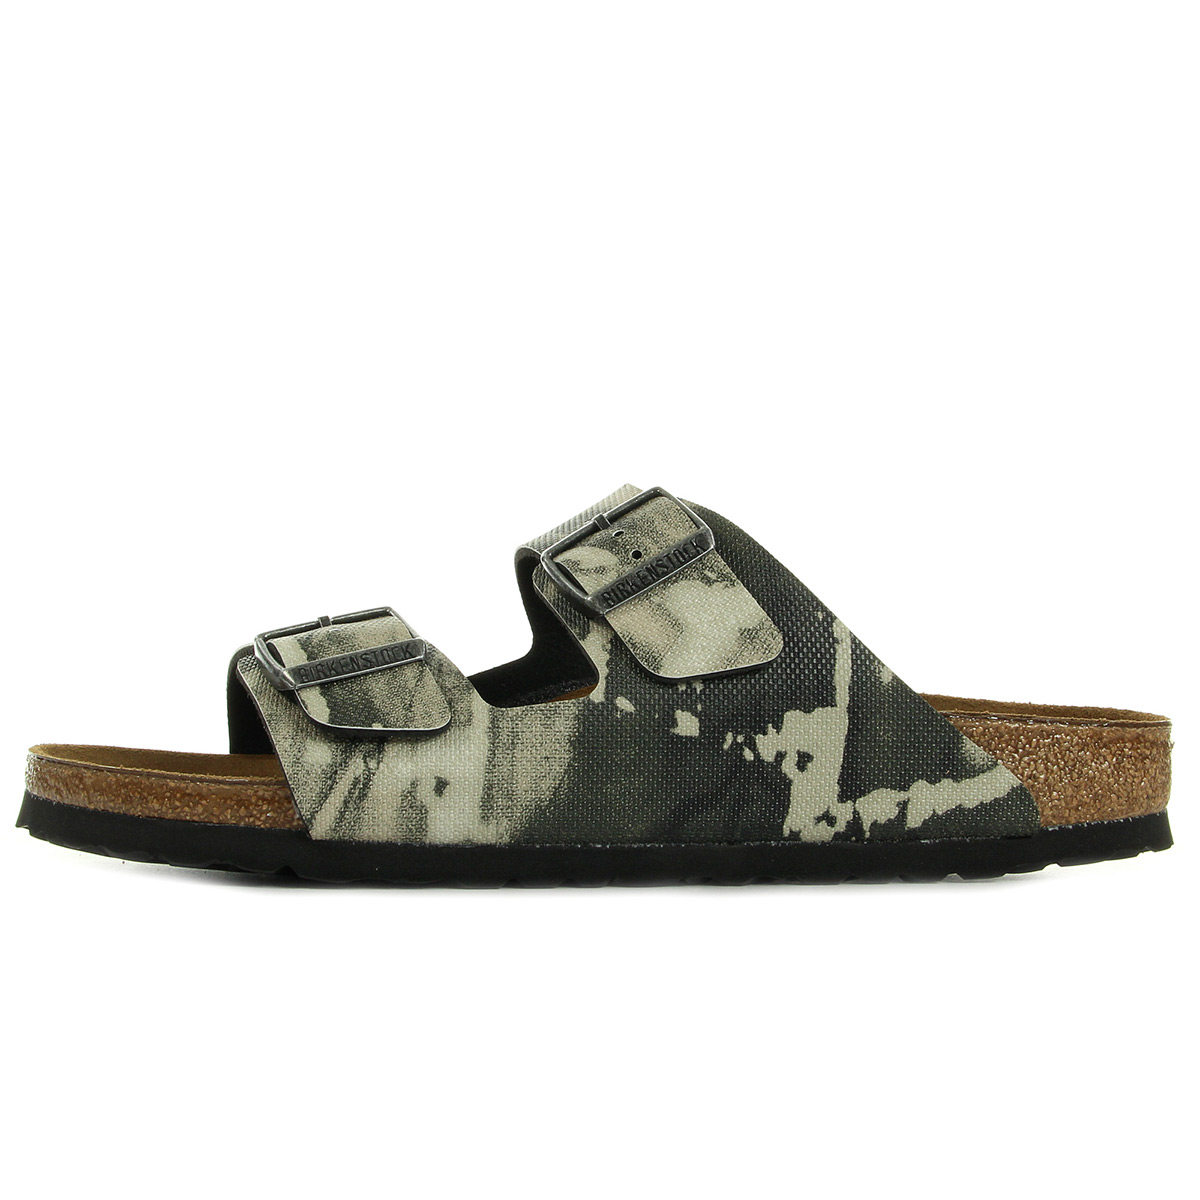 6Aksk6ore6 Arizona BS City Camo Gray 1006167, Sandales homme